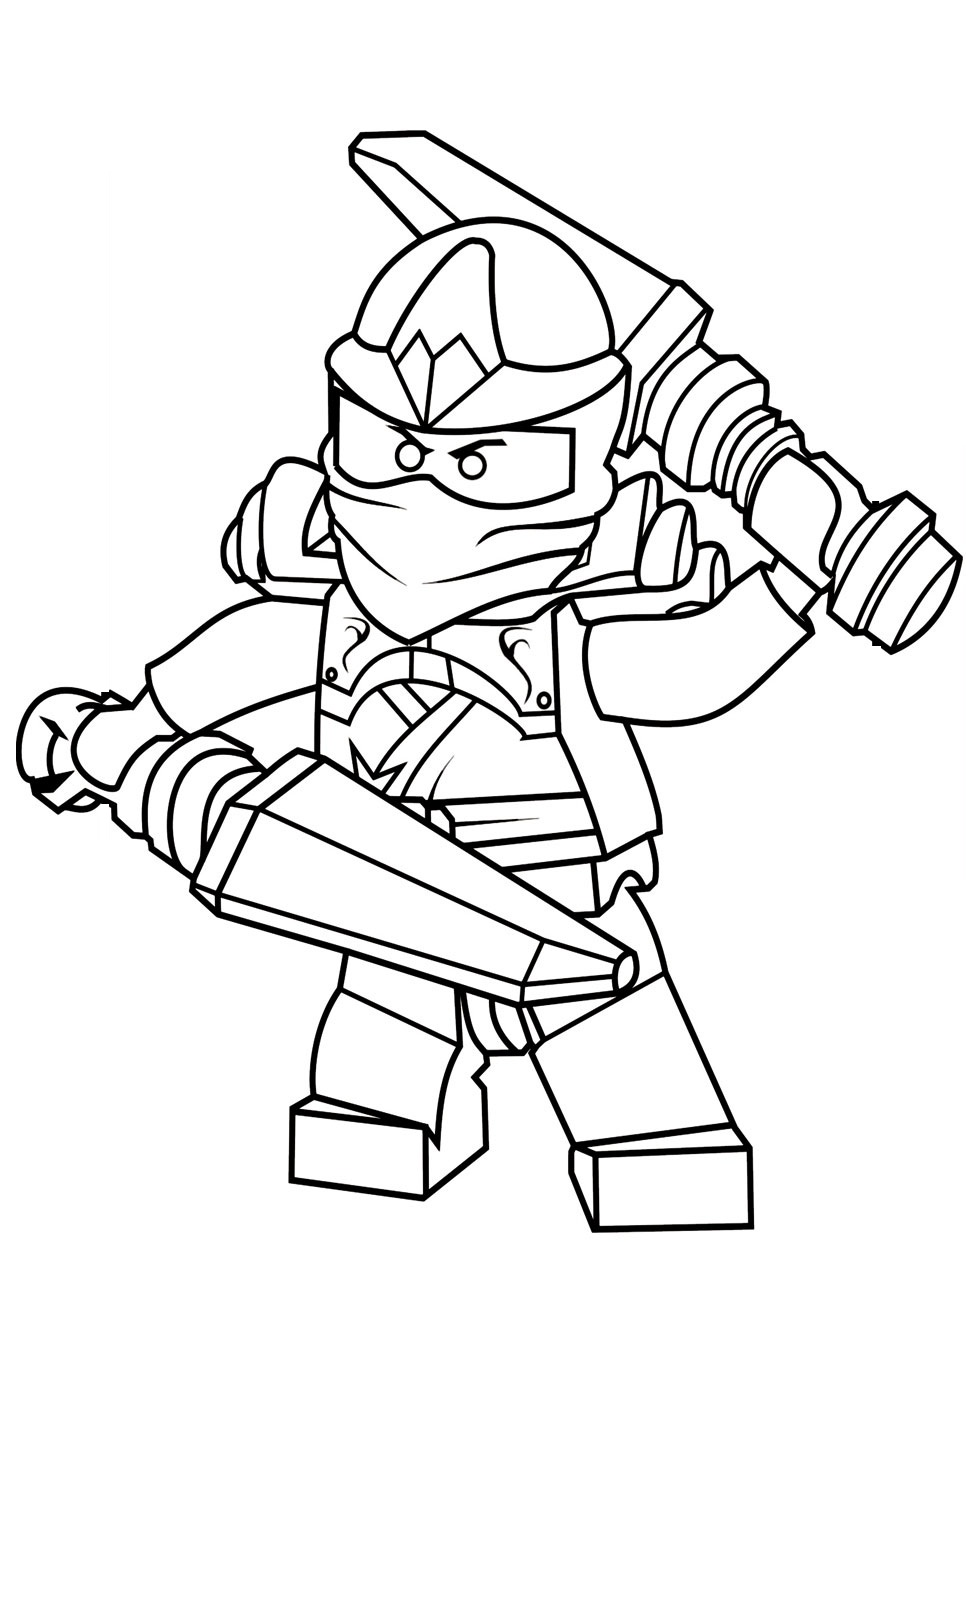 Download Ninjago Coloring Pages Free Printable